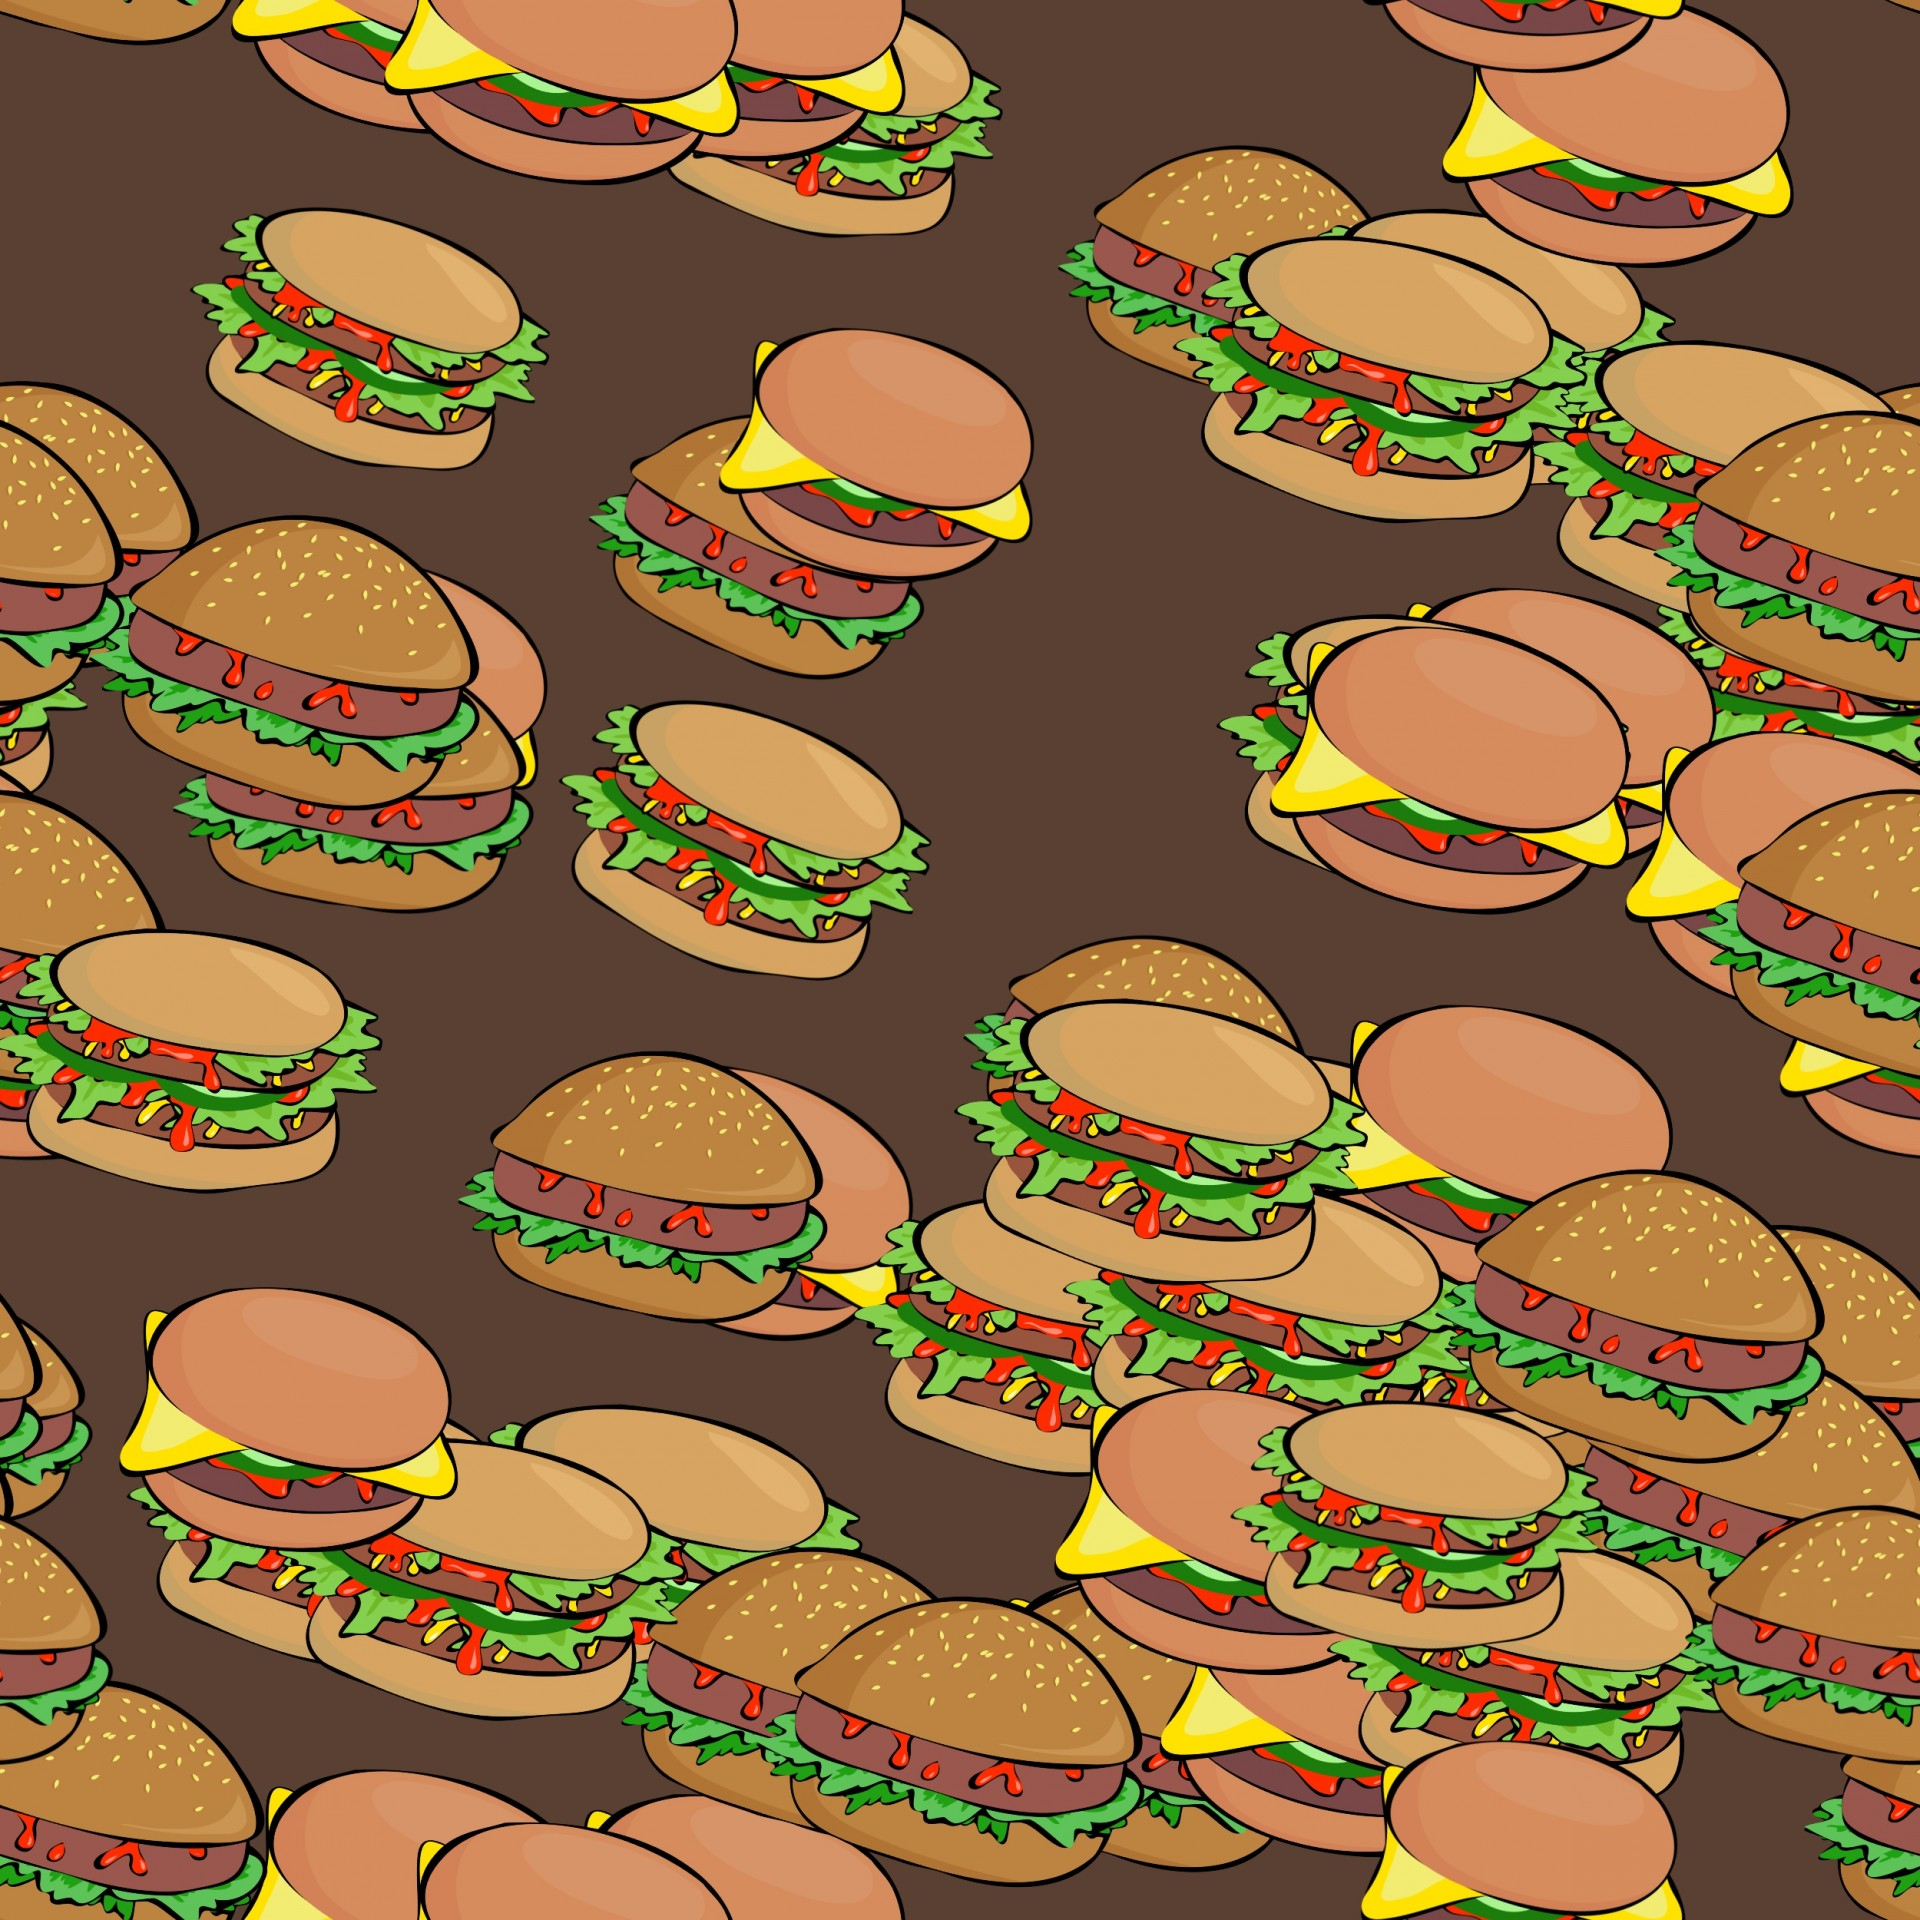 Shutterstock Hd Wallpapers Burger Tile Free Stock Photo Public Domain Pictures